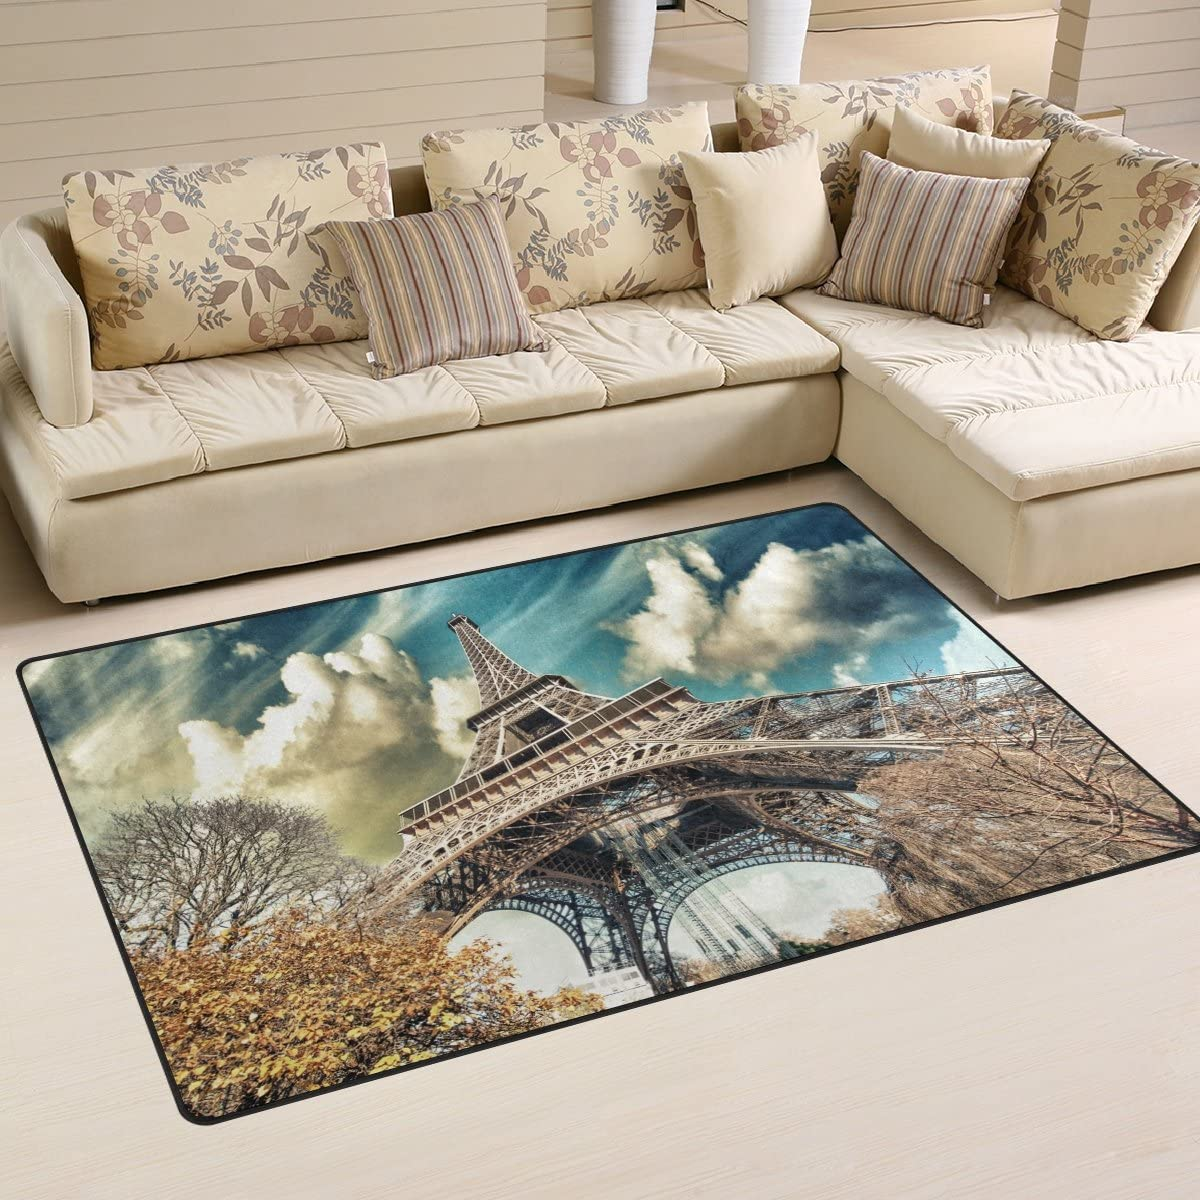 LORVIES Wonderful Street View of Paris Eiffel Tower Area Rug Carpet Non-Slip Floor Mat Doormat